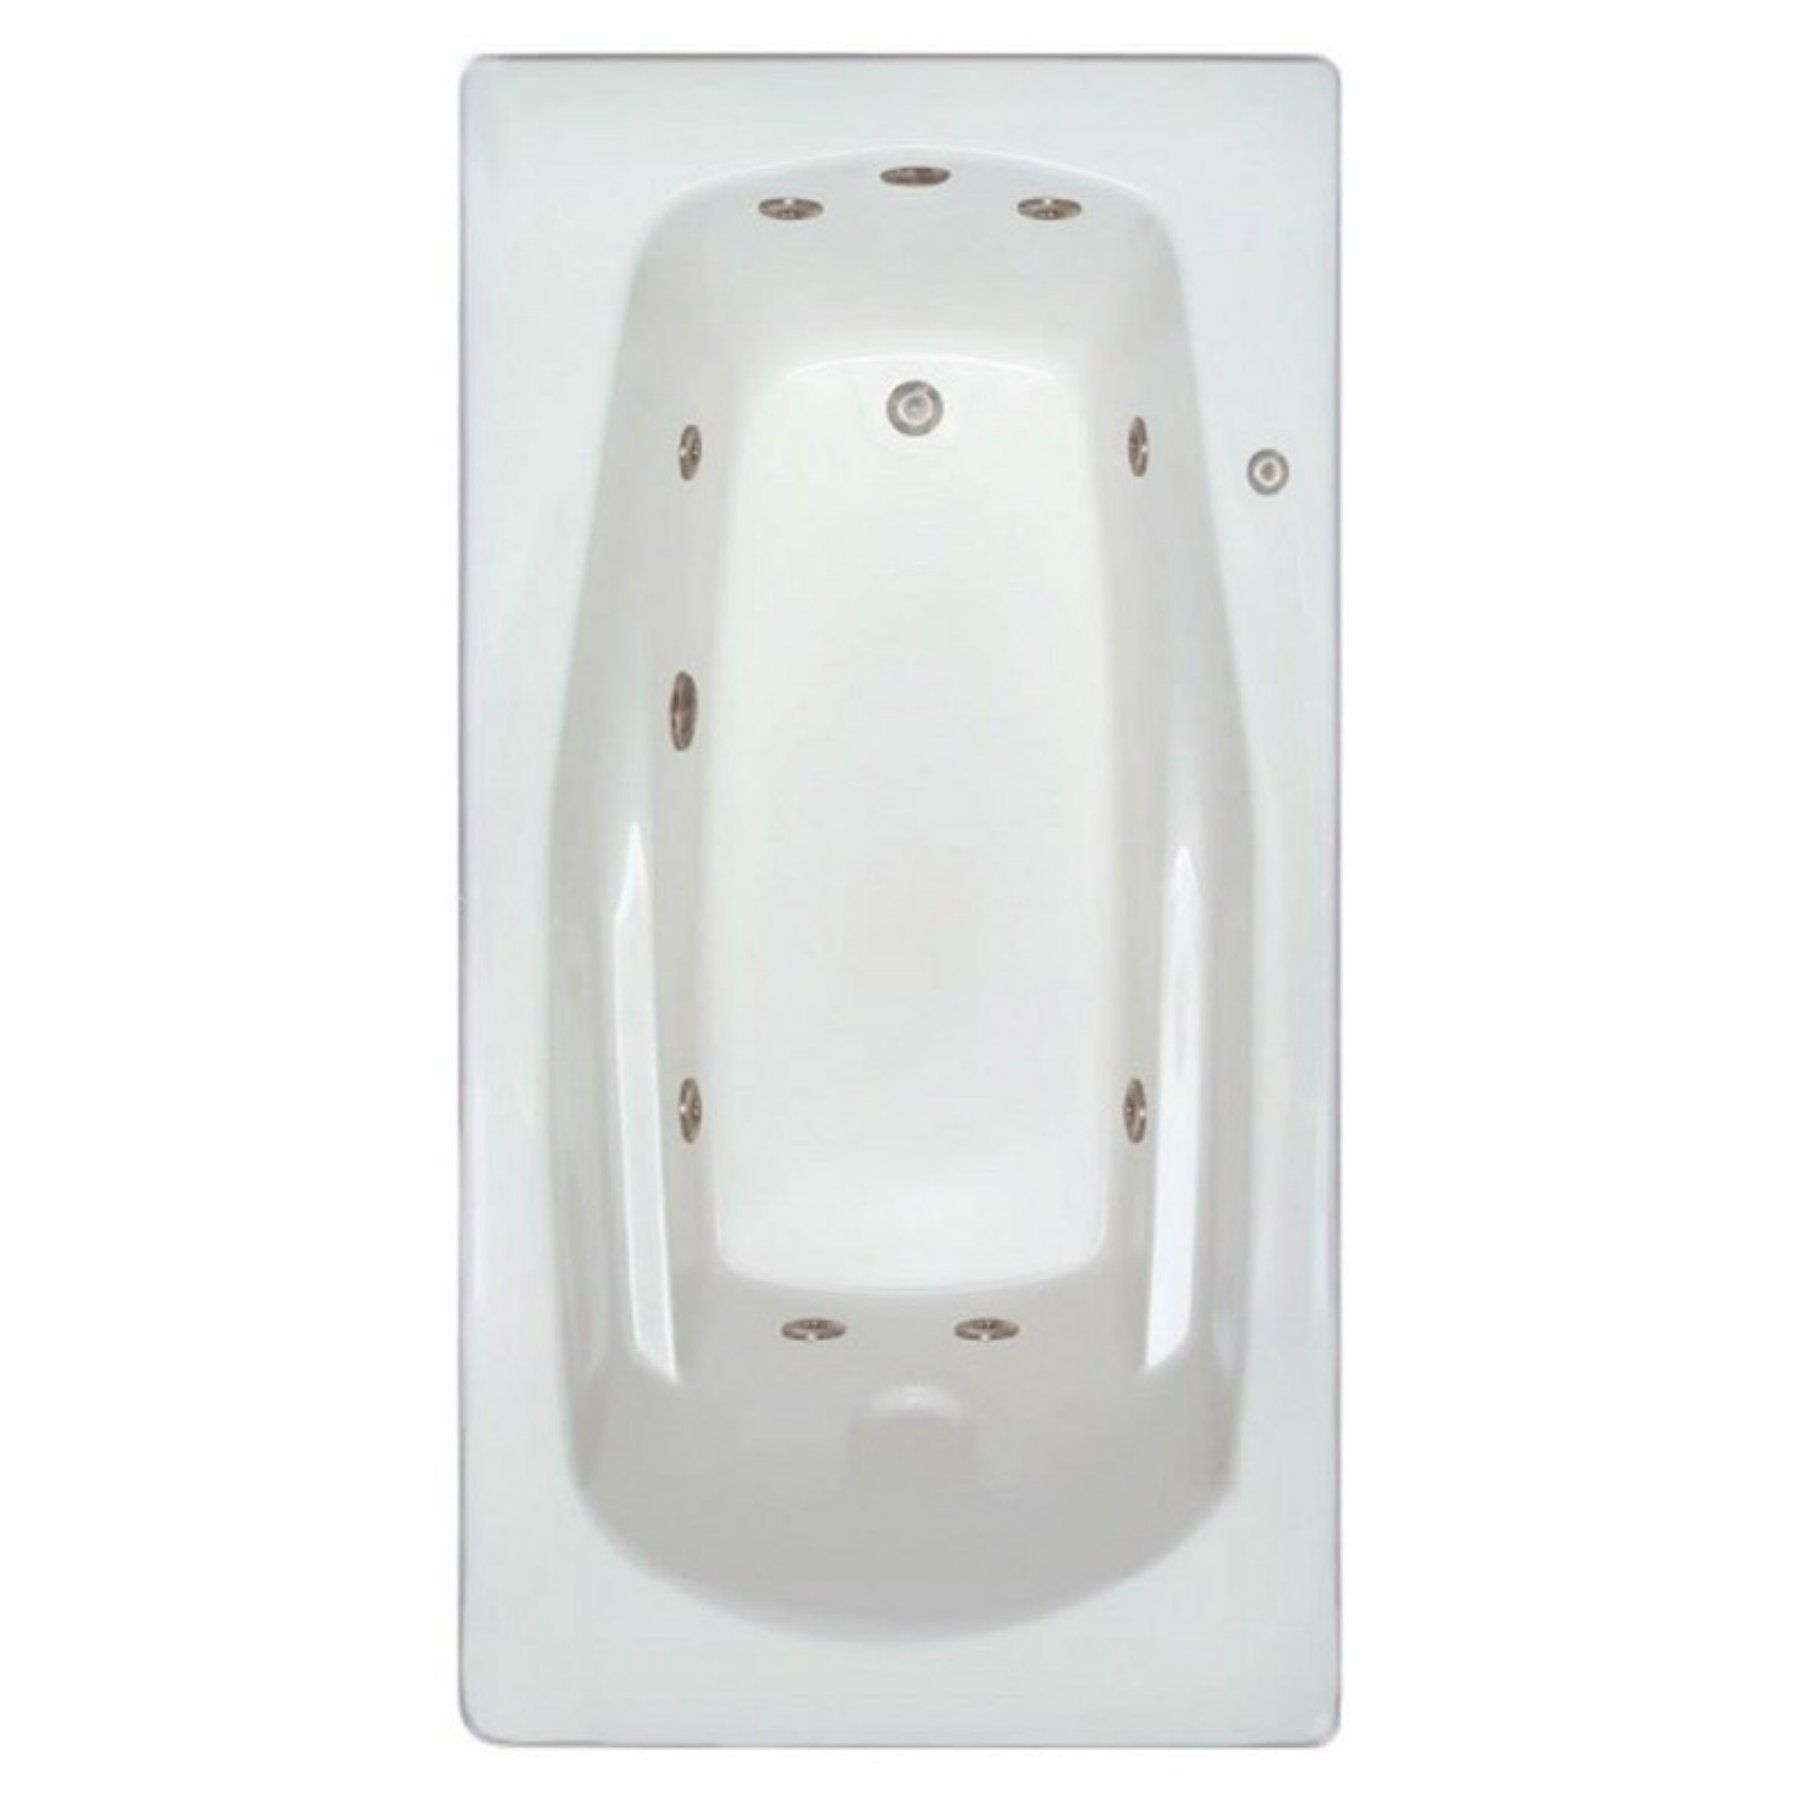 Signature Bath LPI229-W Drop-In Whirlpool Tub - LPI229-W-LD | Best ...